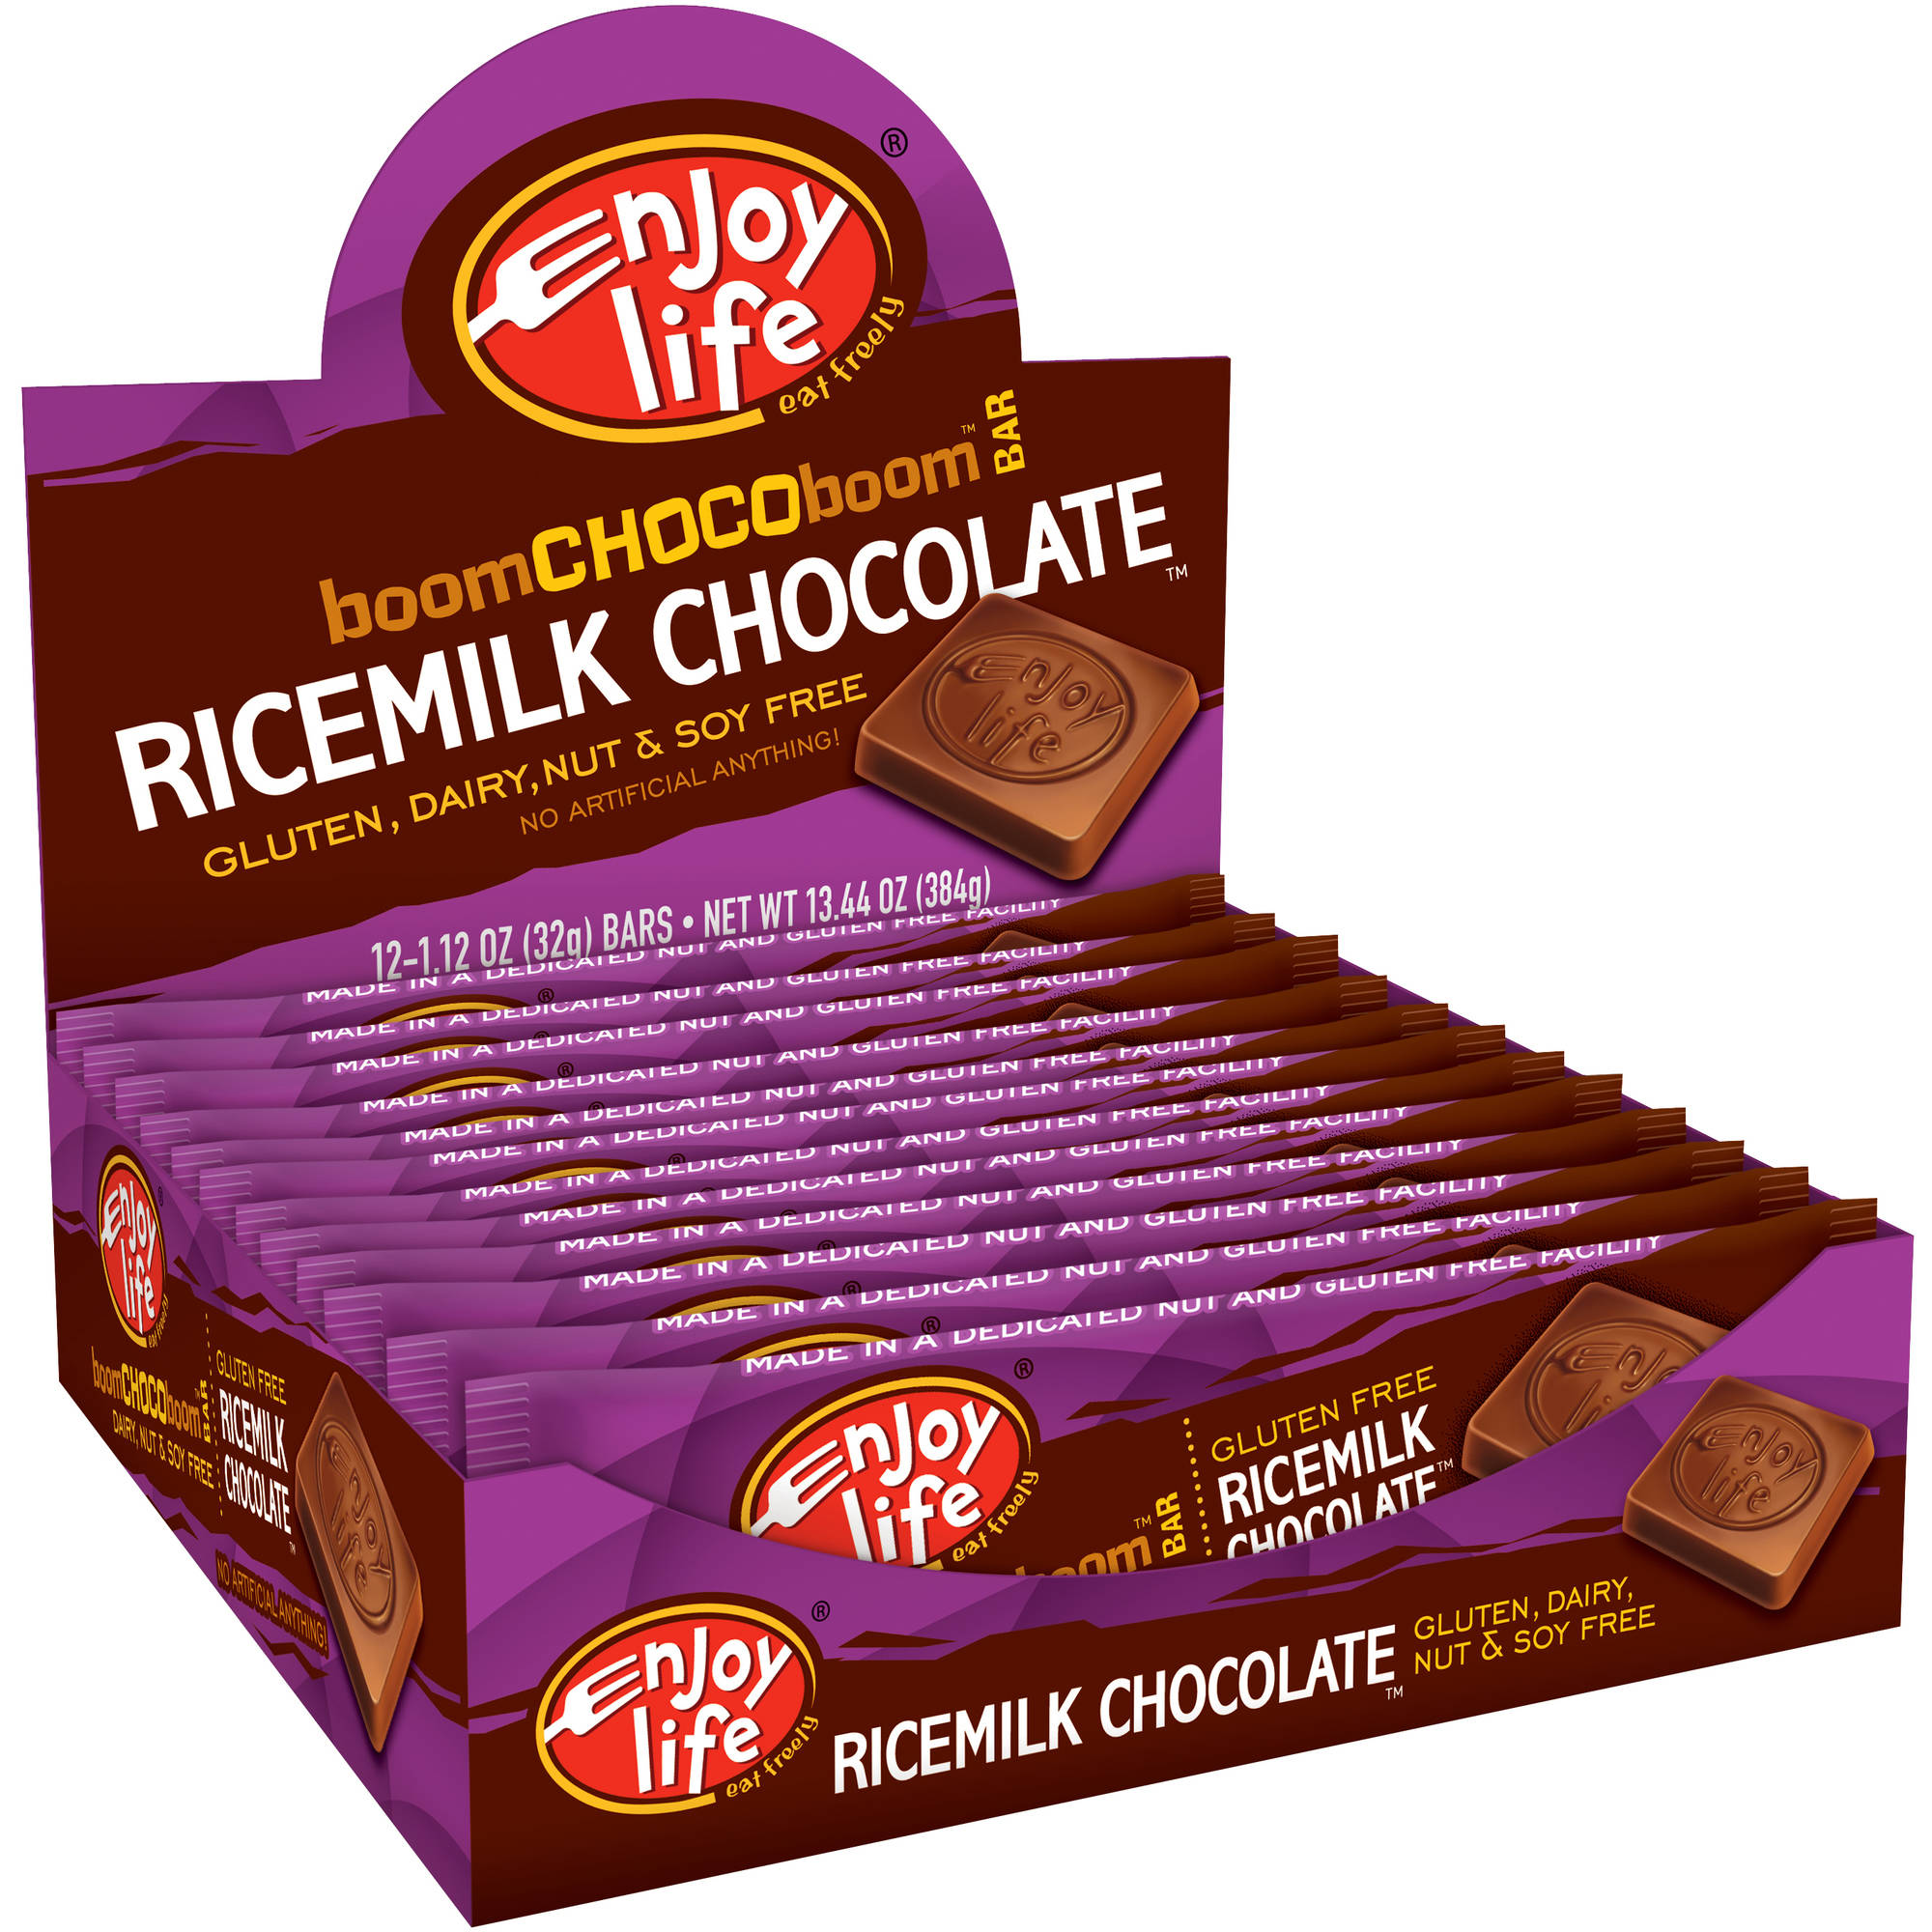 Enjoy Life Gluten-Free, Dairy-Free Ricemilk Chocolate��� Boom Choco Boom��� Bars, 1.12 oz (Pack of 24)